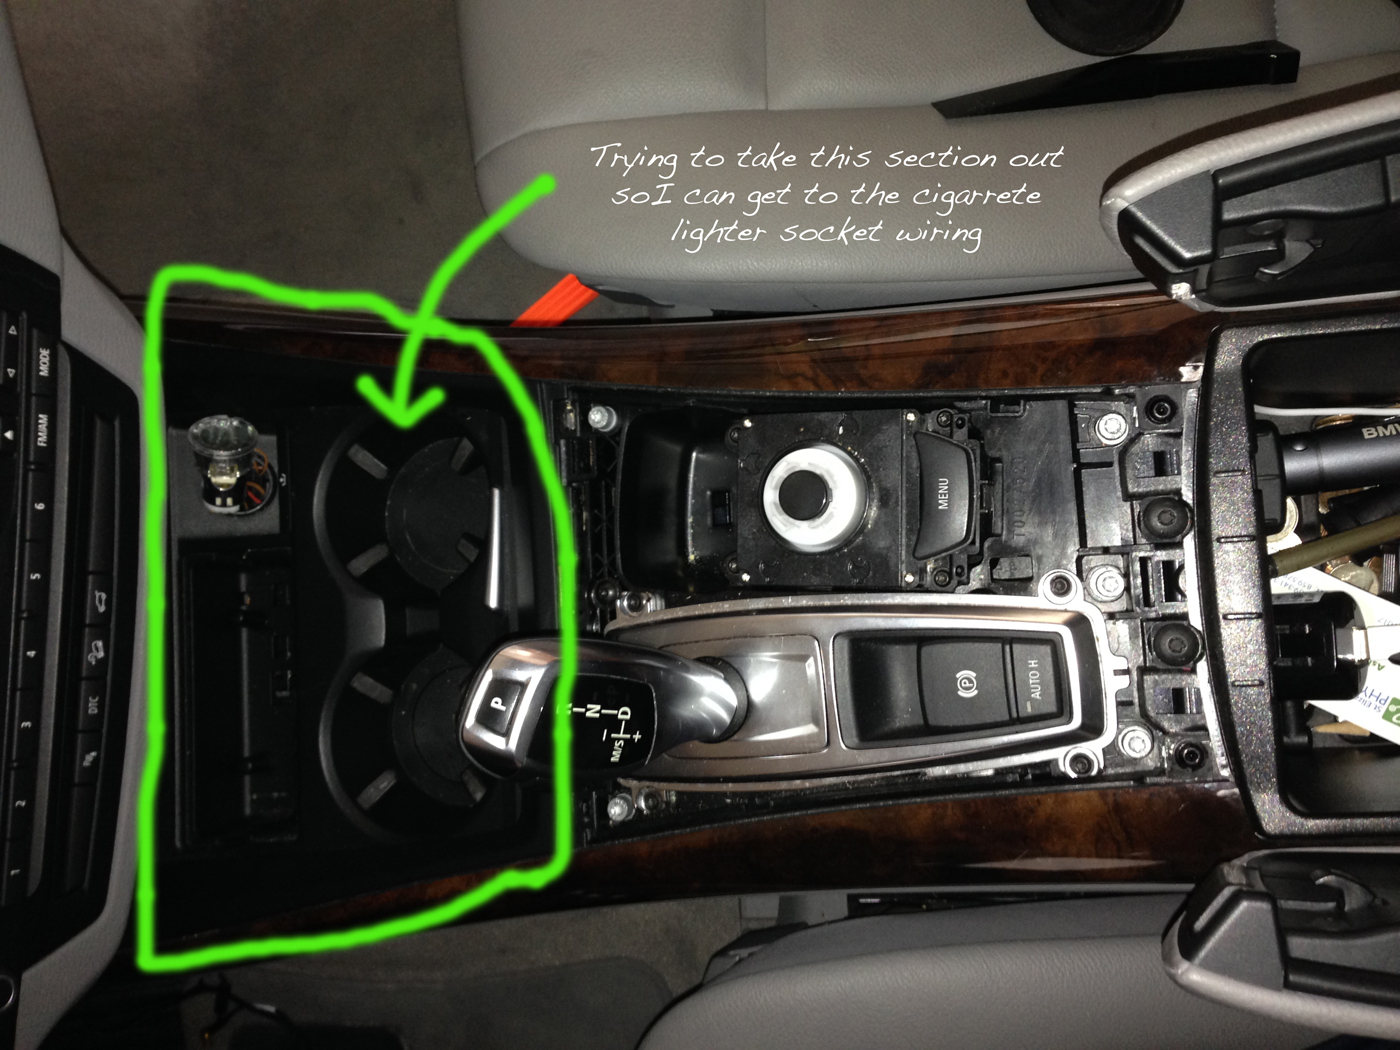 wrg 2228] fuse box on a bmw x5Diagram Also 2010 Toyota Prius Wiring Diagram In Addition Used Bmw X6 #19